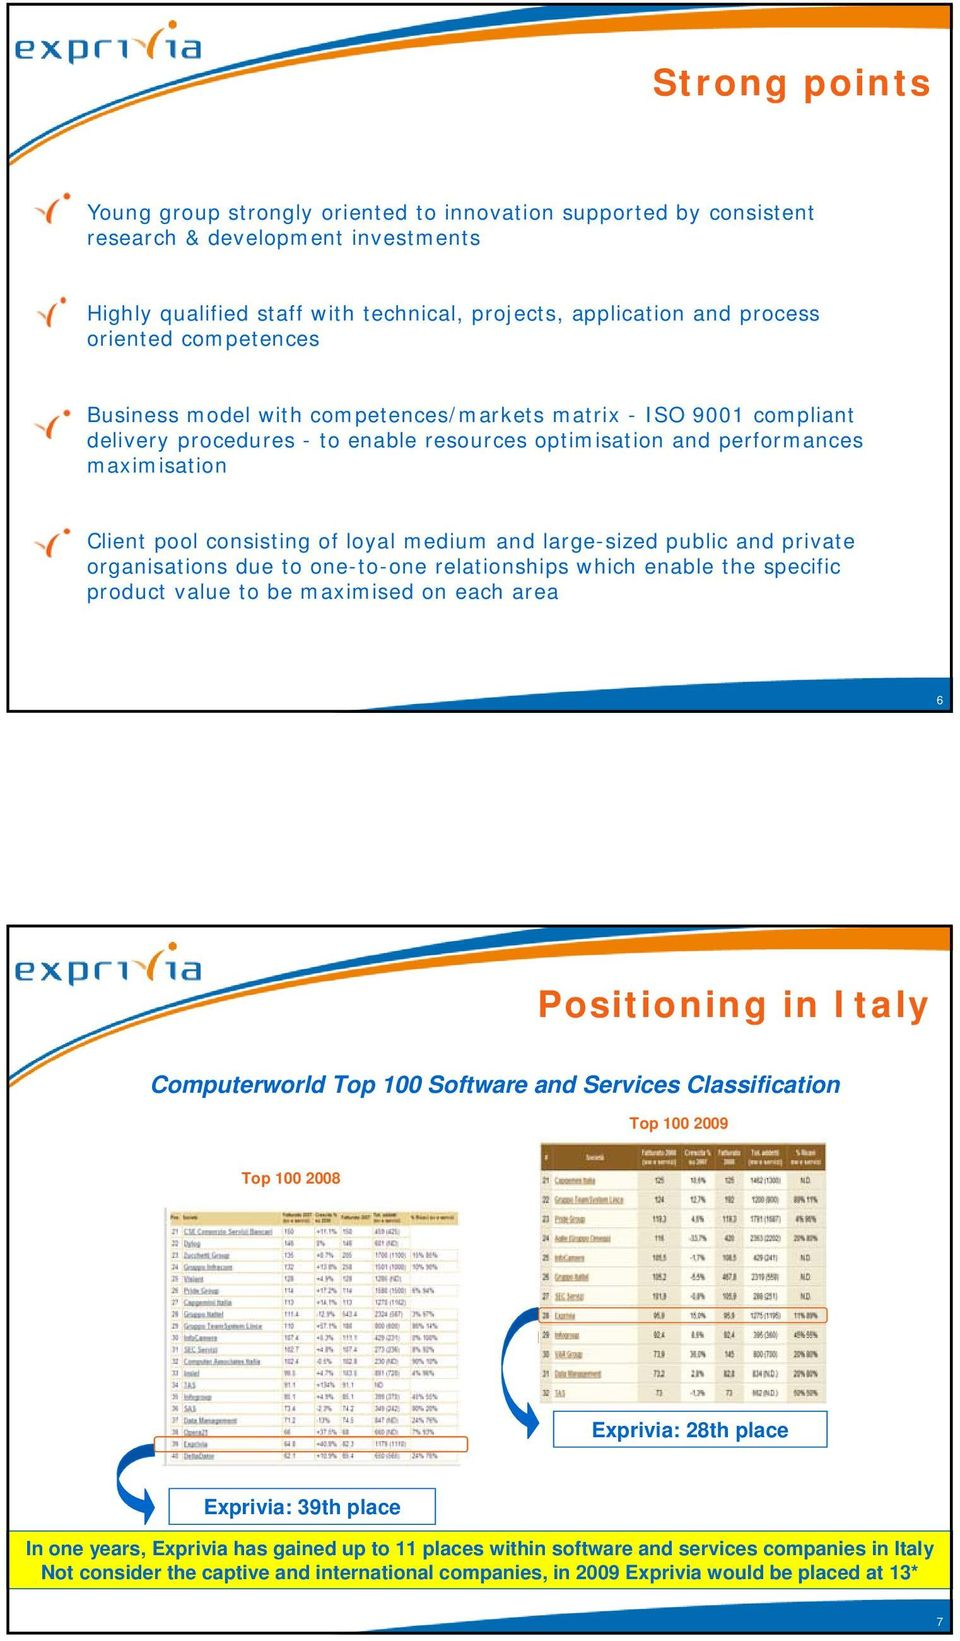 medium and large-sized public and private organisations due to one-to-one relationships which enable the specific product value to be maximised on each area 6 Positioning in Italy Computerworld Top